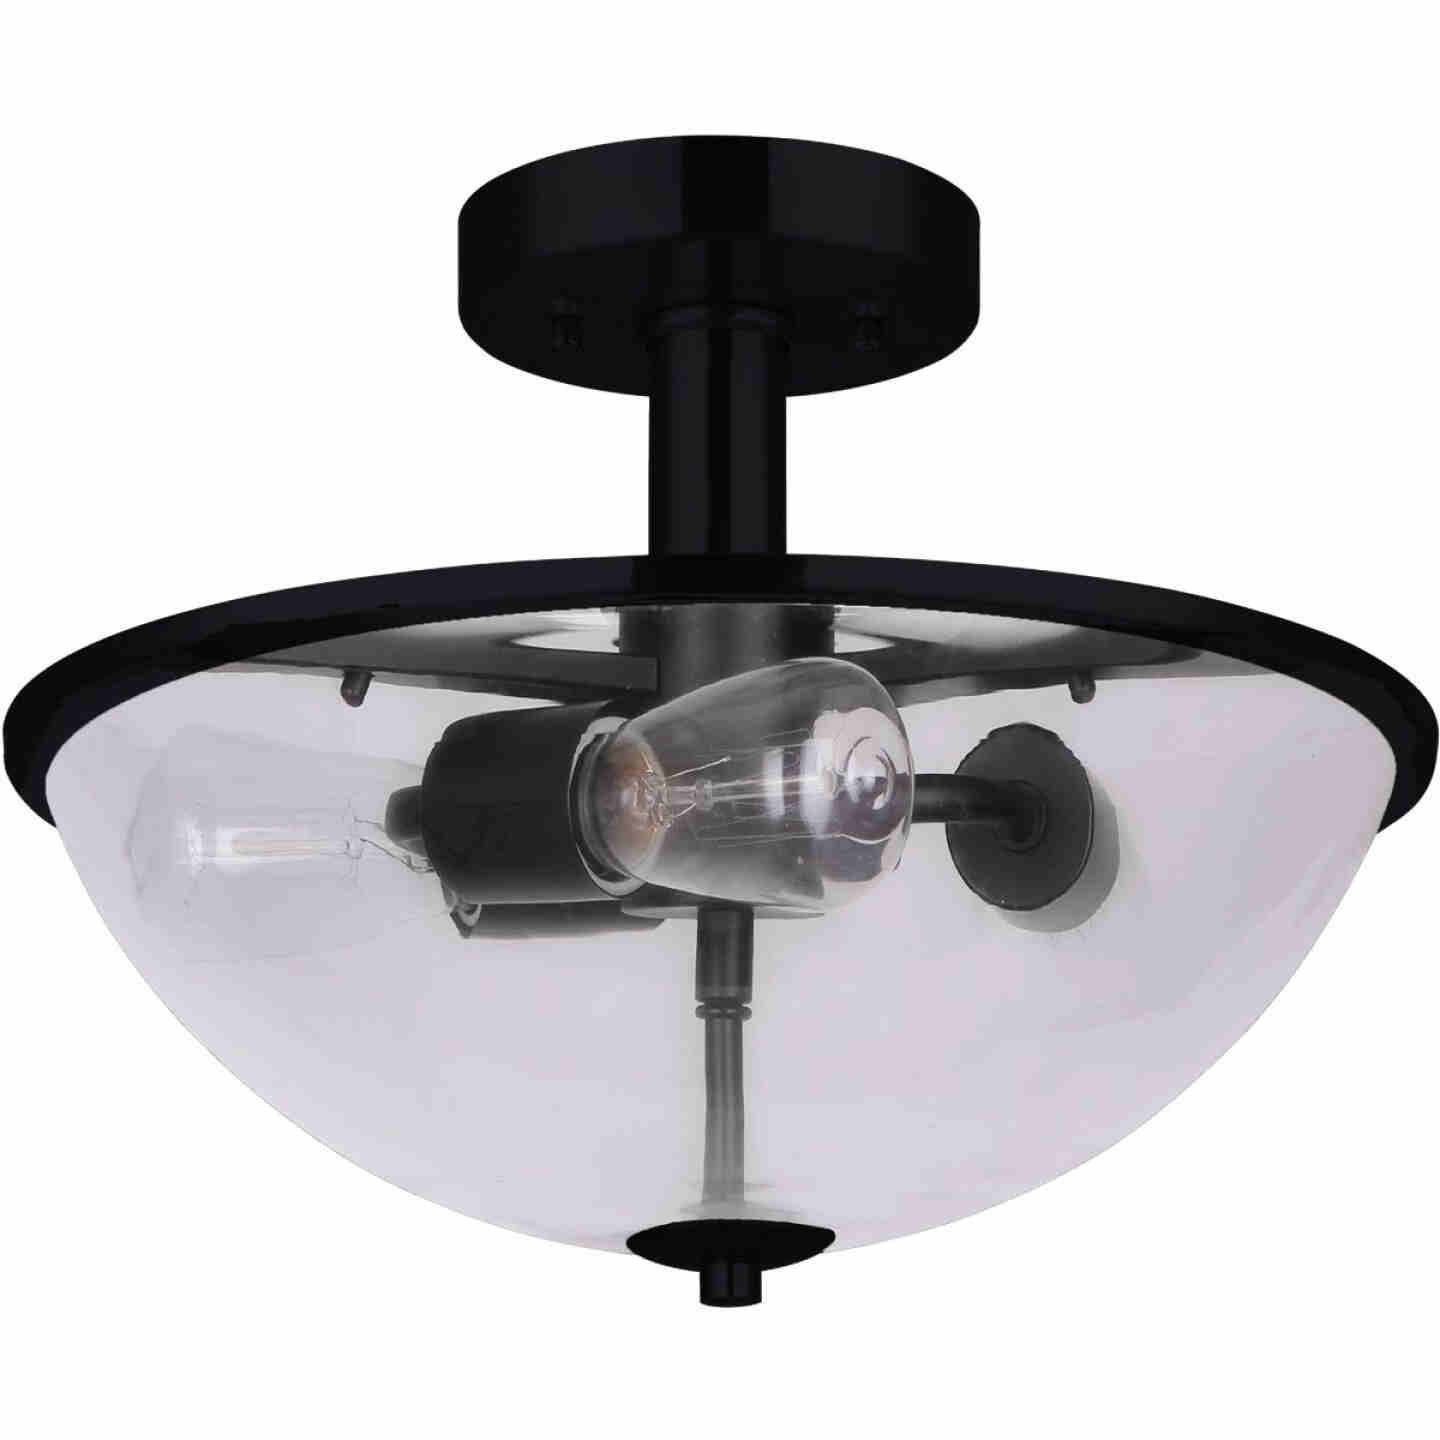 Home Impressions 16.5 In. Matte Black Semi-Flush Mount Ceiling Light Fixture Image 1